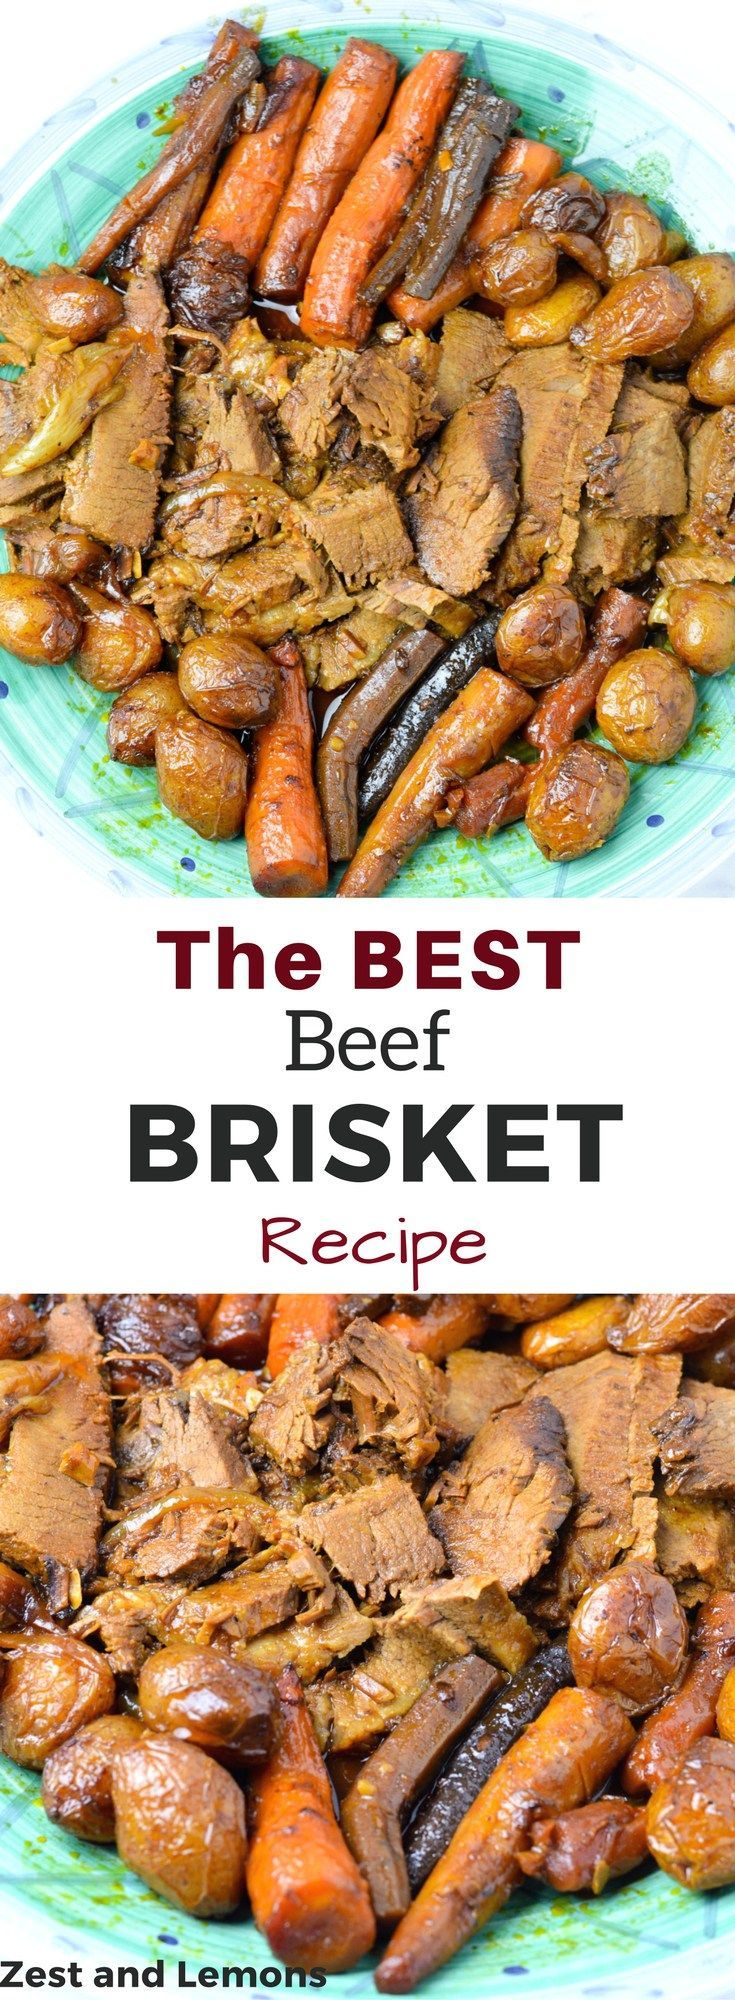 The BEST beef brisket recipe! (gluten free | cooking | recipes | holiday meals | family meals)- Zest and Lemons #glutenfree #holidayrecipes #familyrecipes